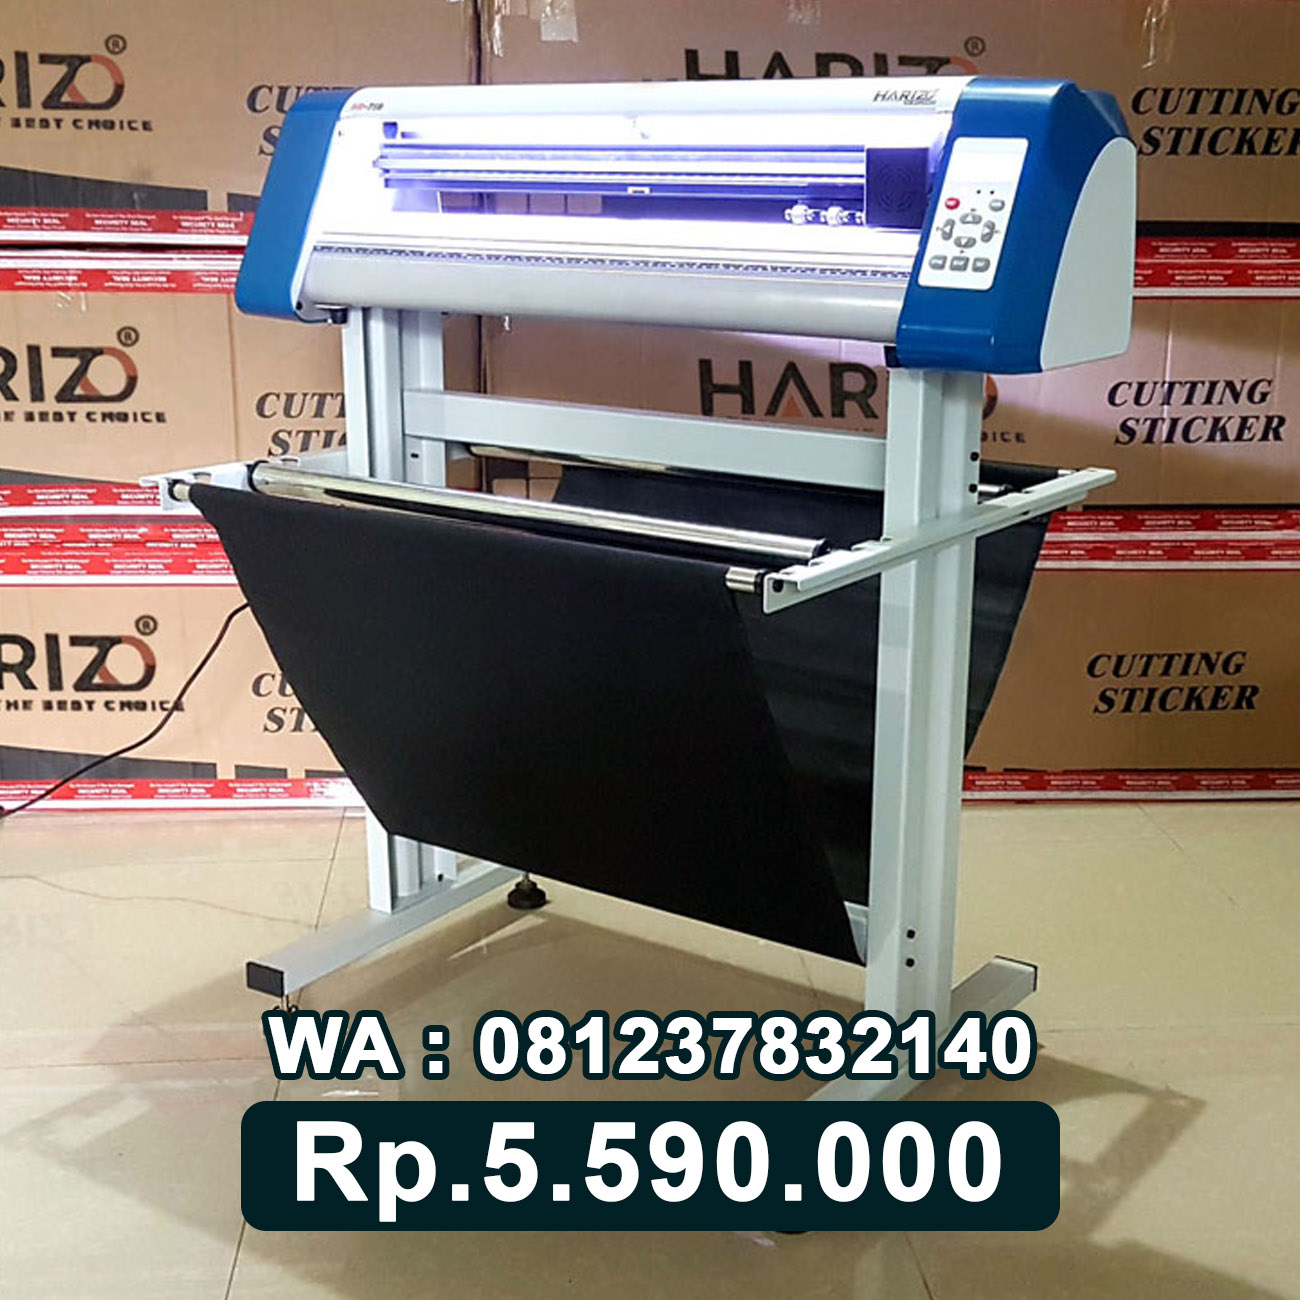 JUAL MESIN CUTTING STICKER HARIZO 720 Bireuen